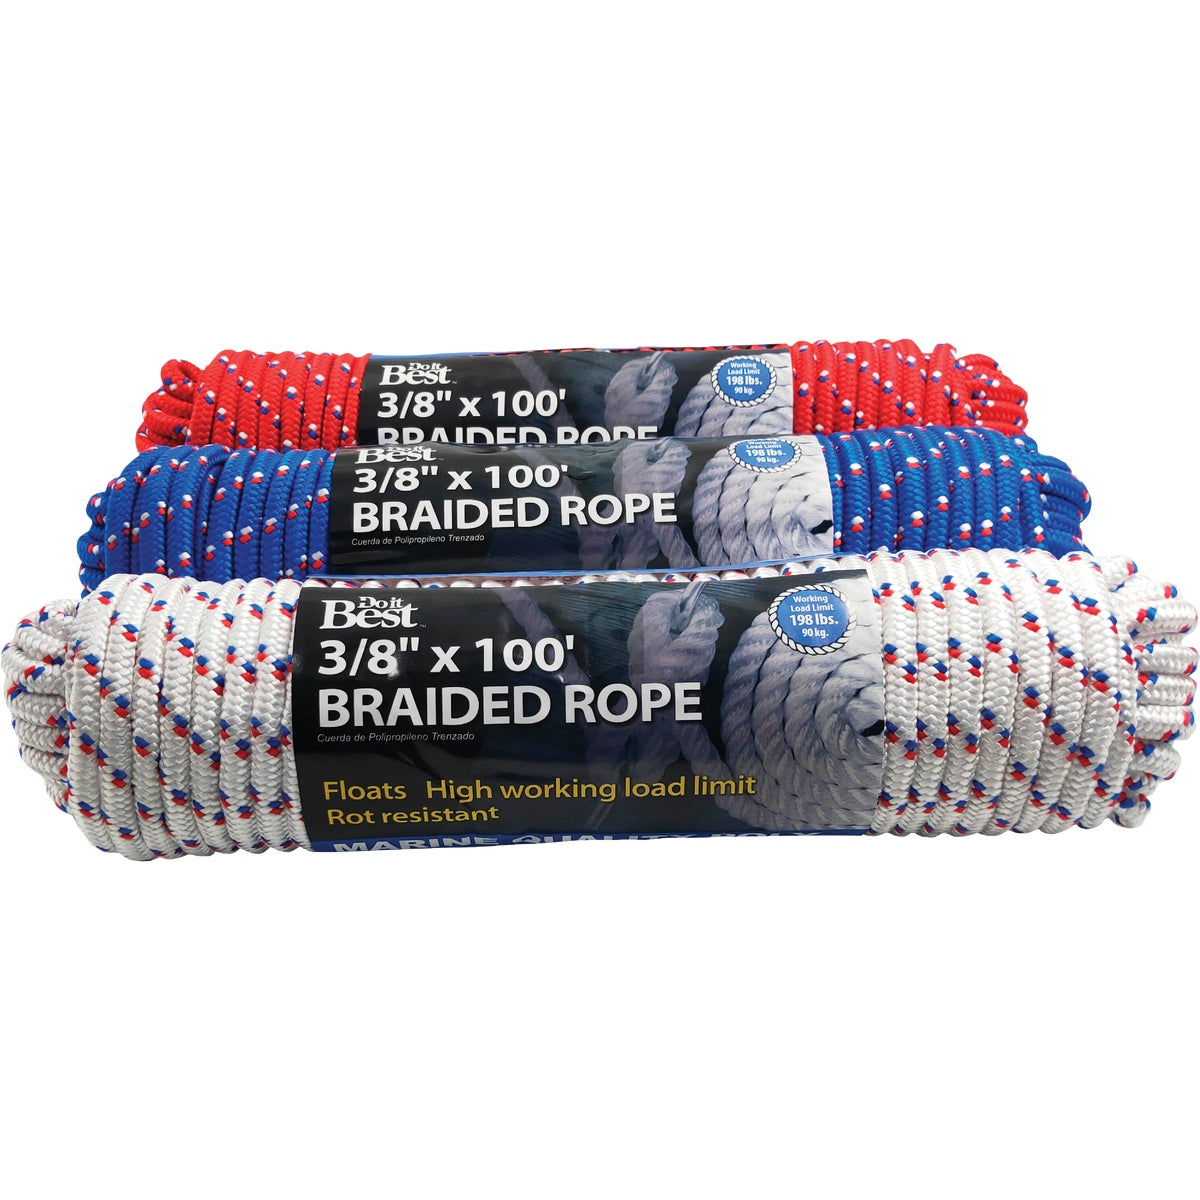 3/8X100 POLYBRAID ROPE - 703153 by Do it Best